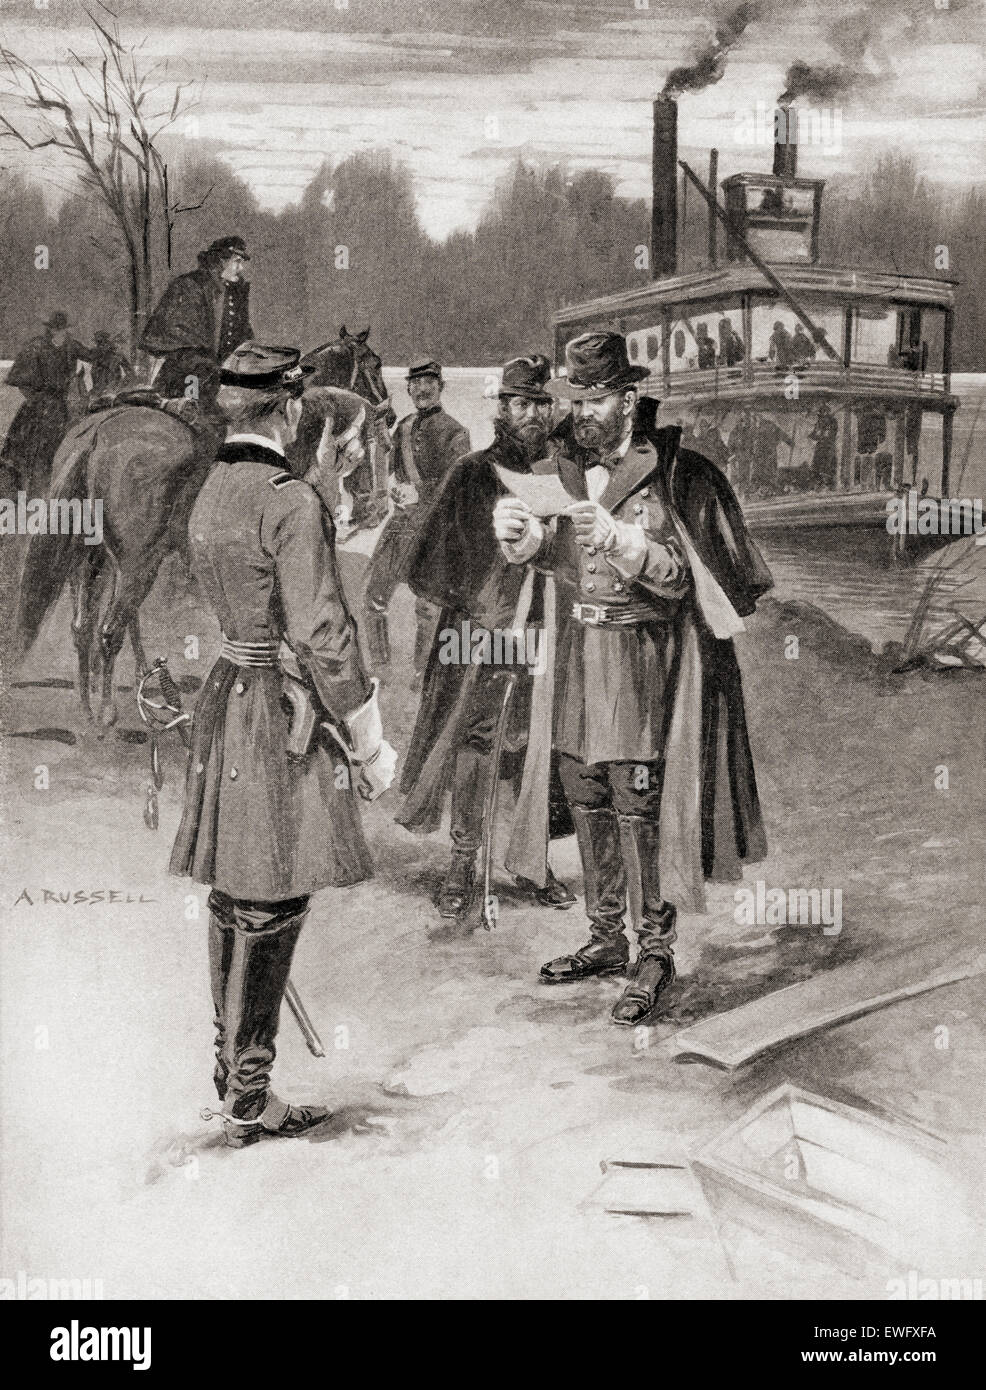 General Grant's arrival at The Battle of Shiloh, aka the Battle of Pittsburg Landing, 1862.   Ulysses S. Grant, - Stock Image